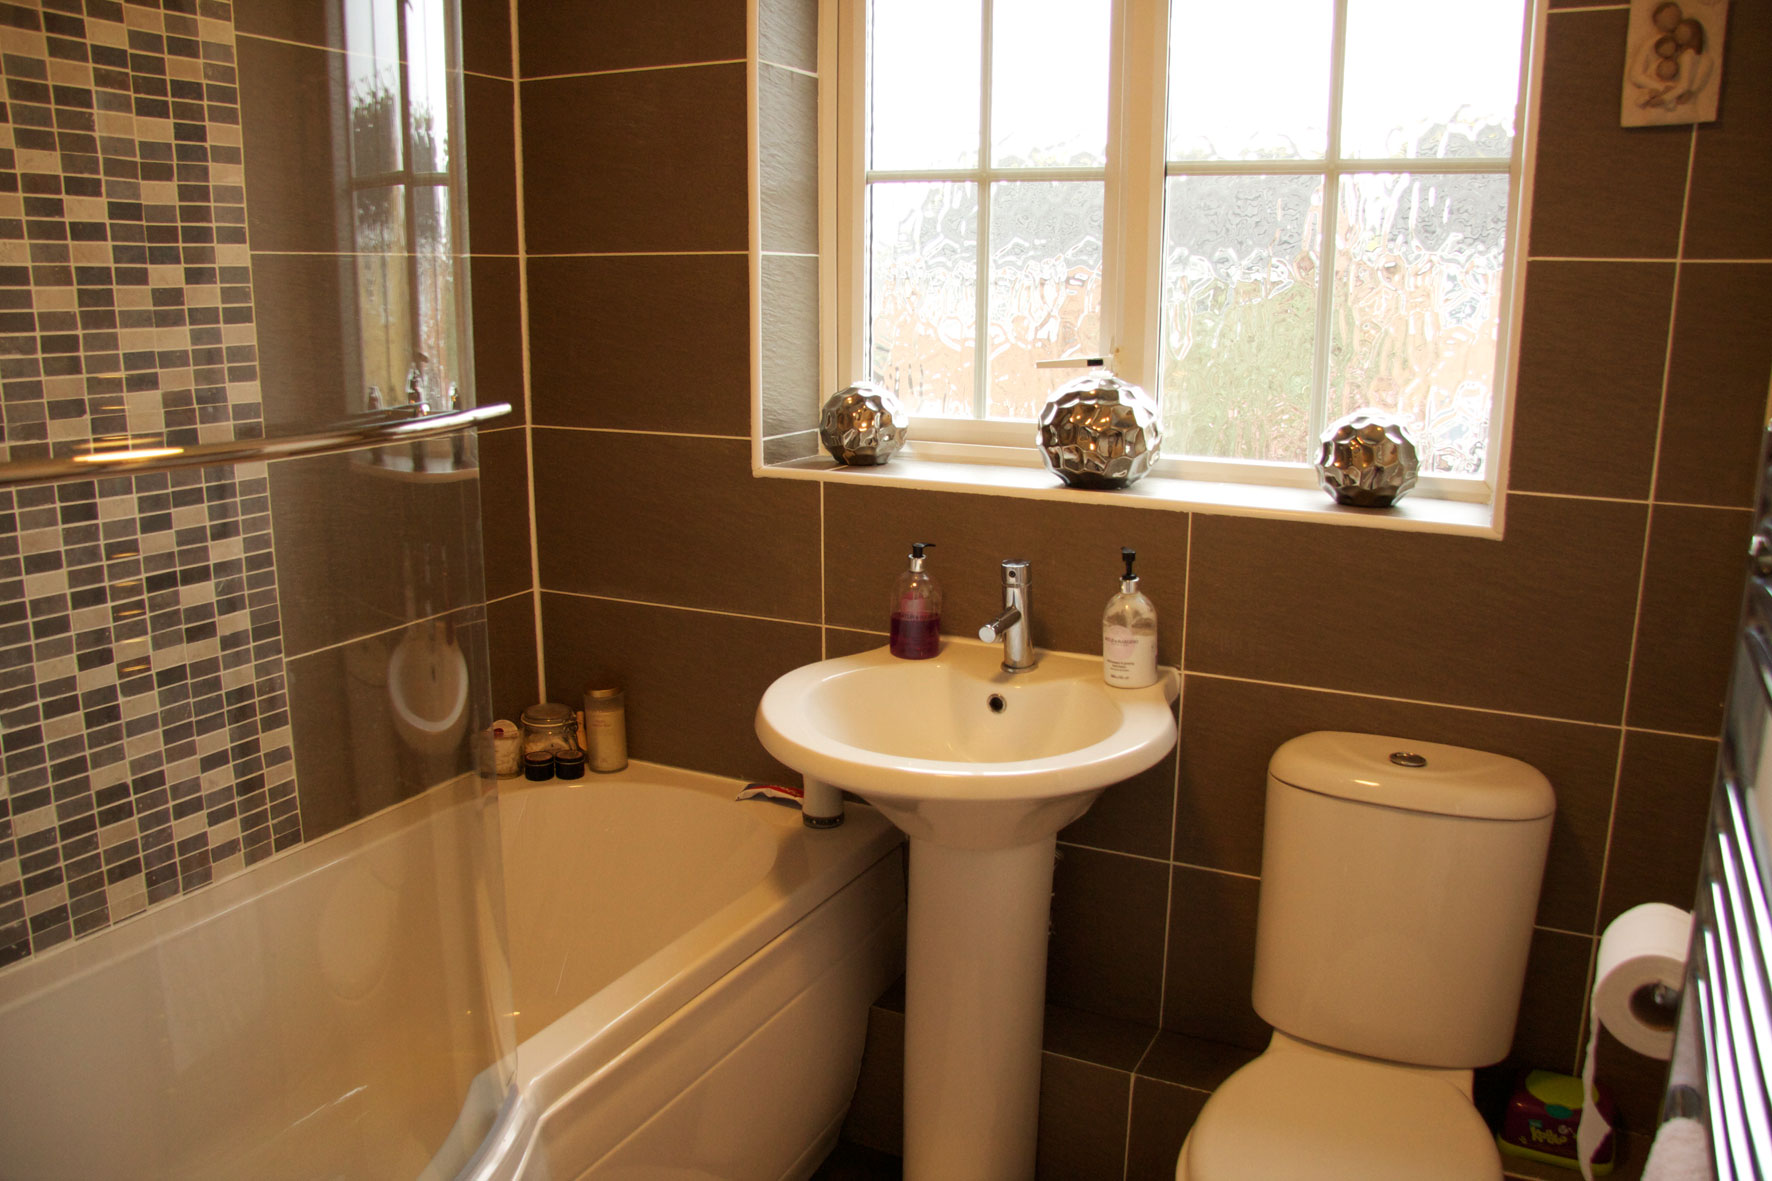 Work ac homeworks northampton based home improvements for New bathtub designs